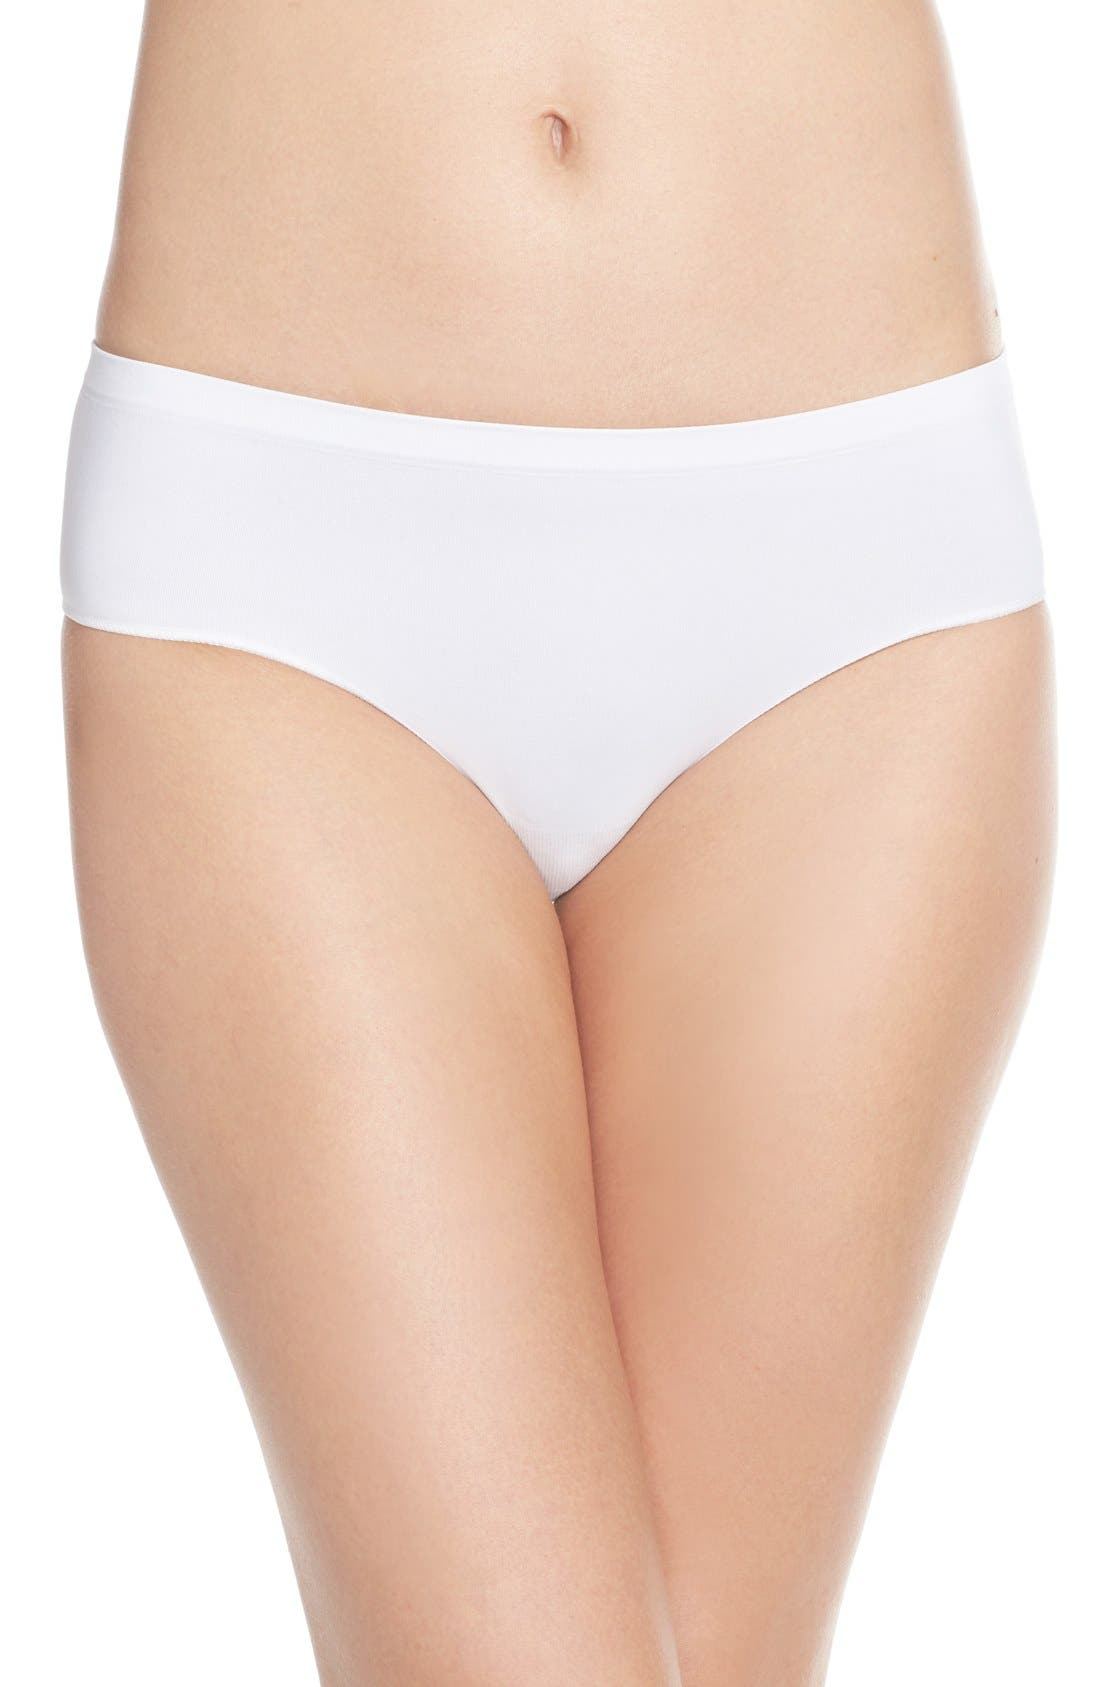 Alternate Image 1 Selected - Nordstrom Lingerie Seamless Hipster Panties (3 for $33)